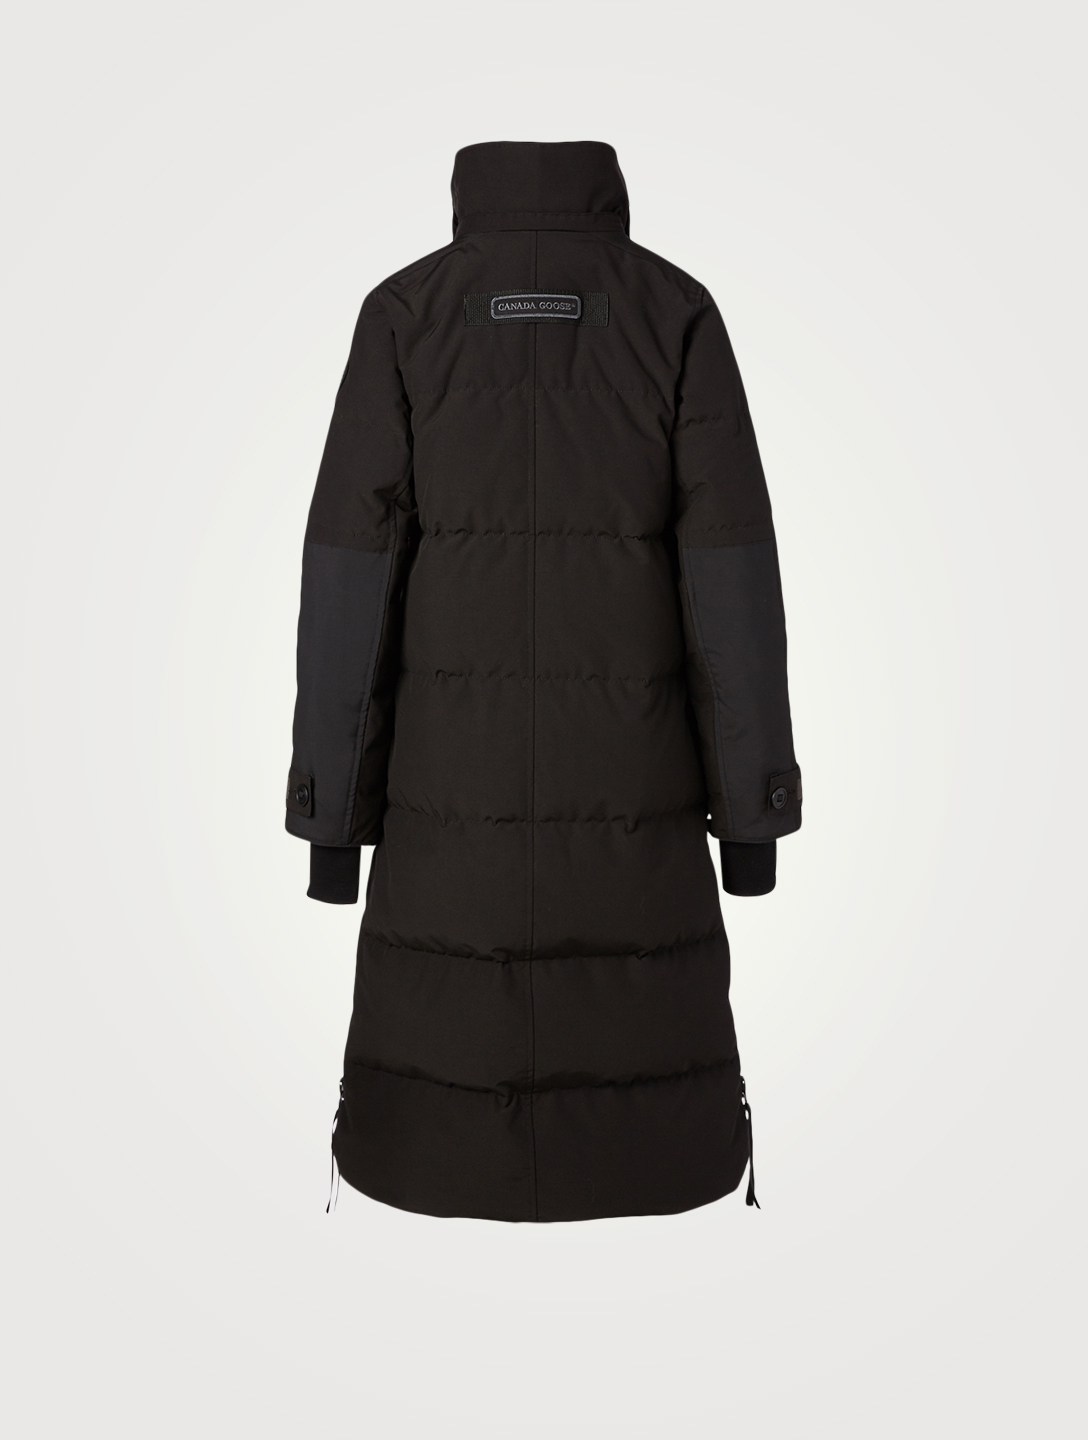 CANADA GOOSE Aldridge Black Label Down Coat With Fur Hood Women's Black